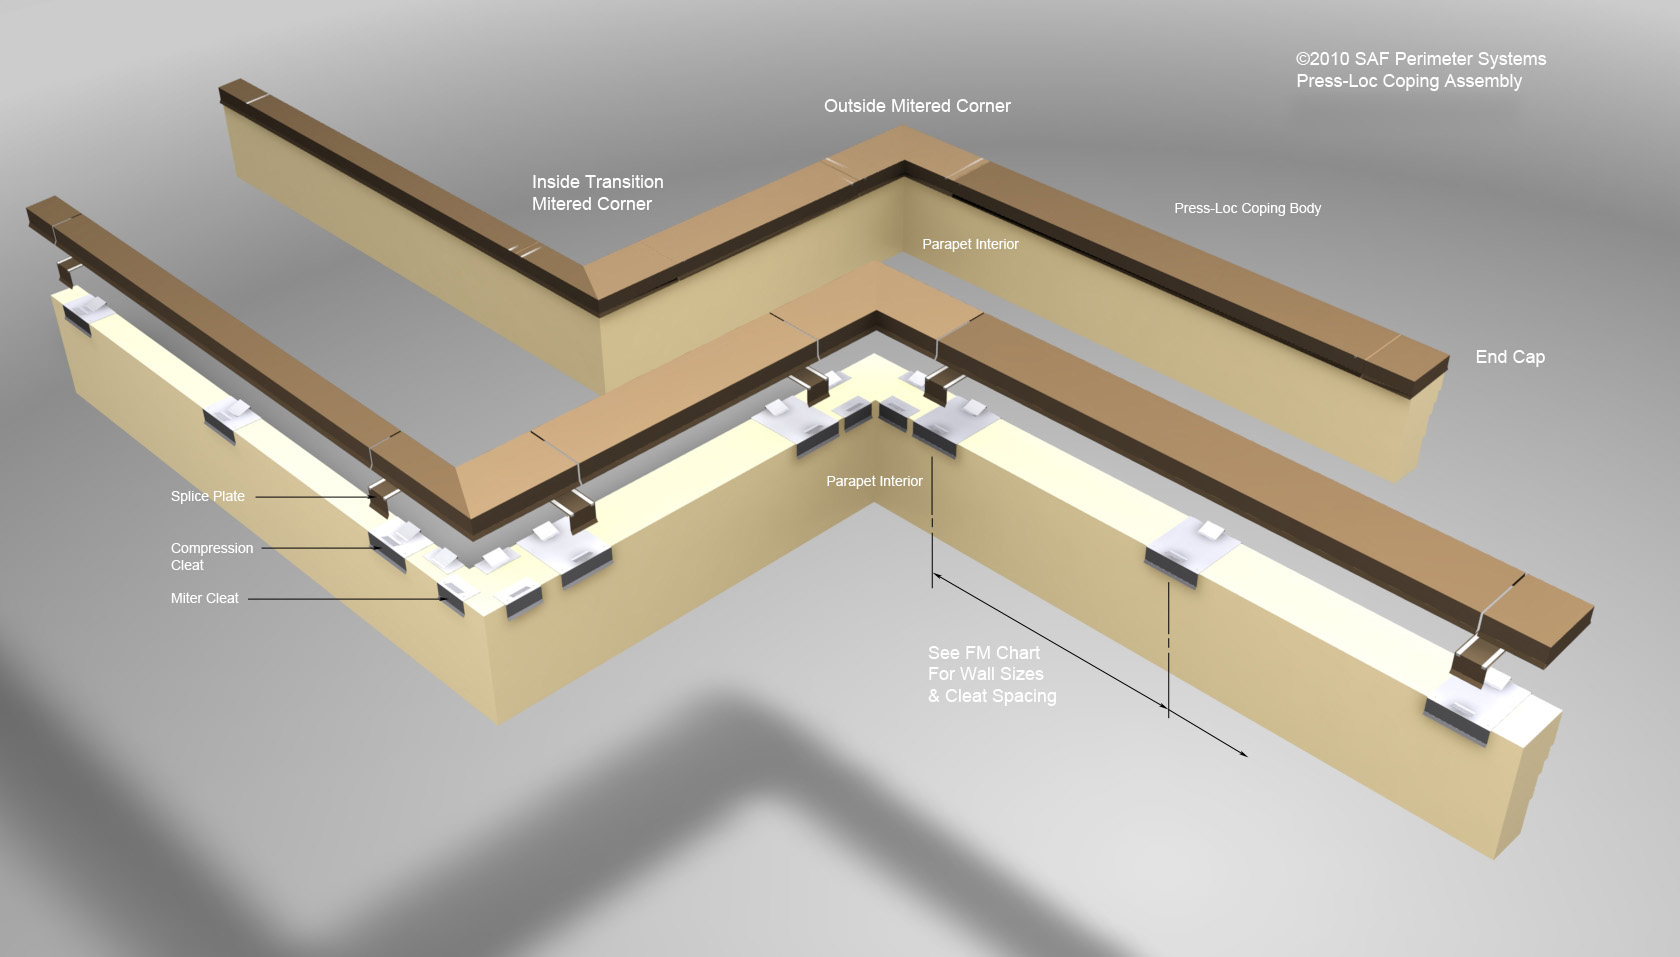 Commercial Building Coping Saf Perimeter Systems Saf